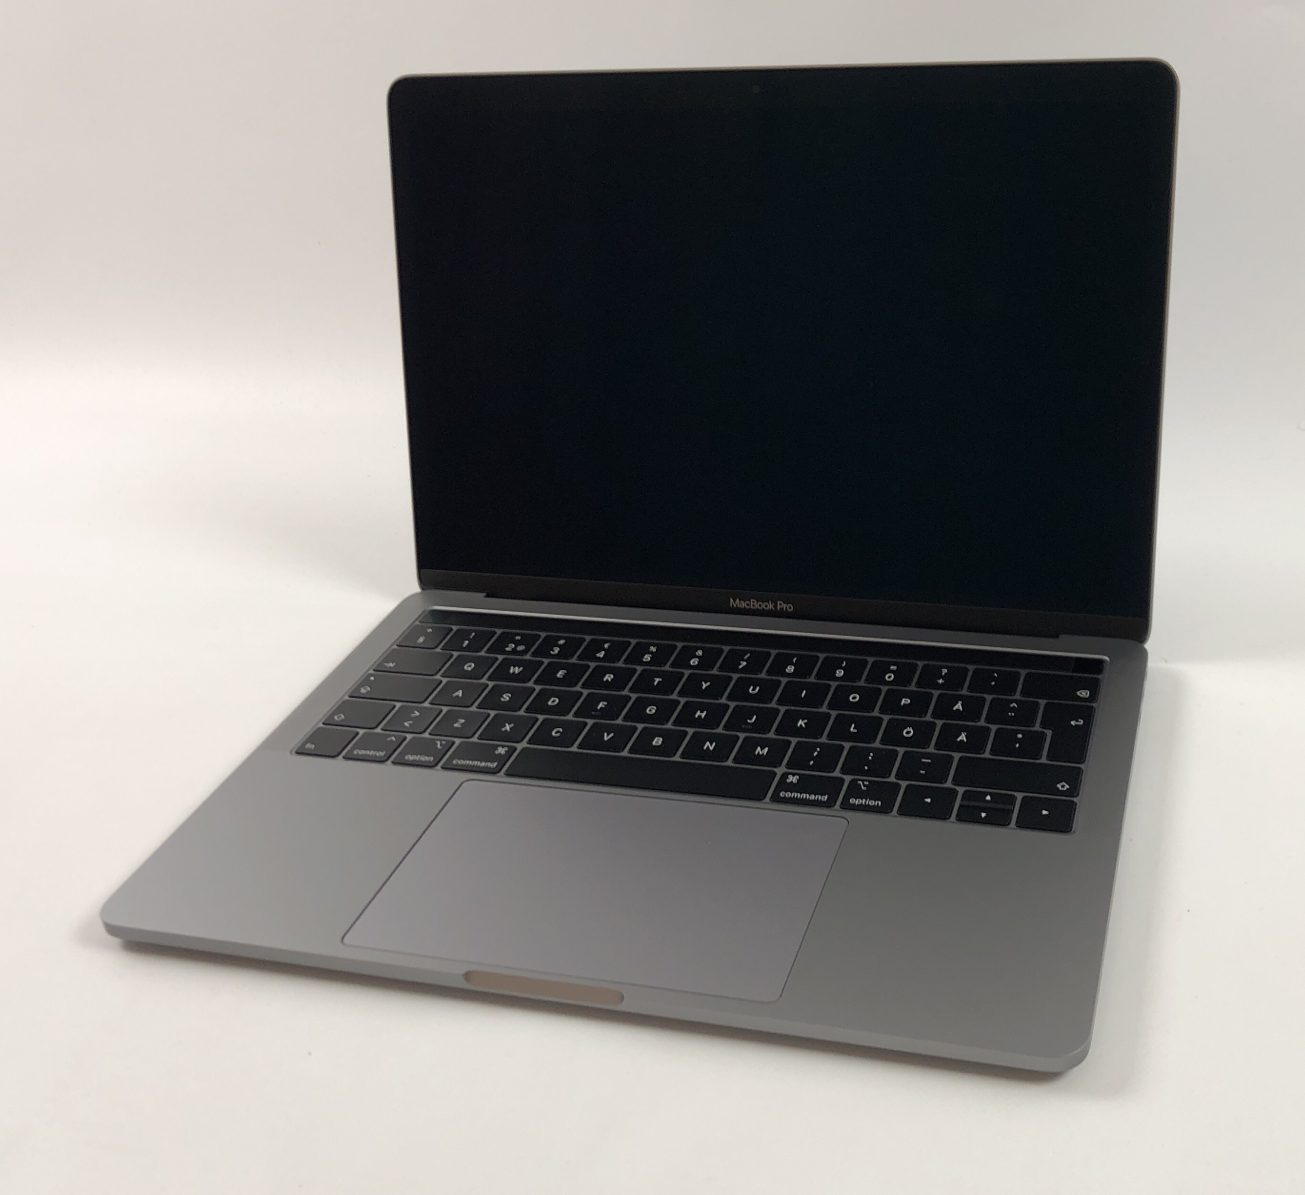 "MacBook Pro 13"" 4TBT Mid 2019 (Intel Quad-Core i5 2.4 GHz 8 GB RAM 512 GB SSD), Space Gray, Intel Quad-Core i5 2.4 GHz, 8 GB RAM, 512 GB SSD, Kuva 1"